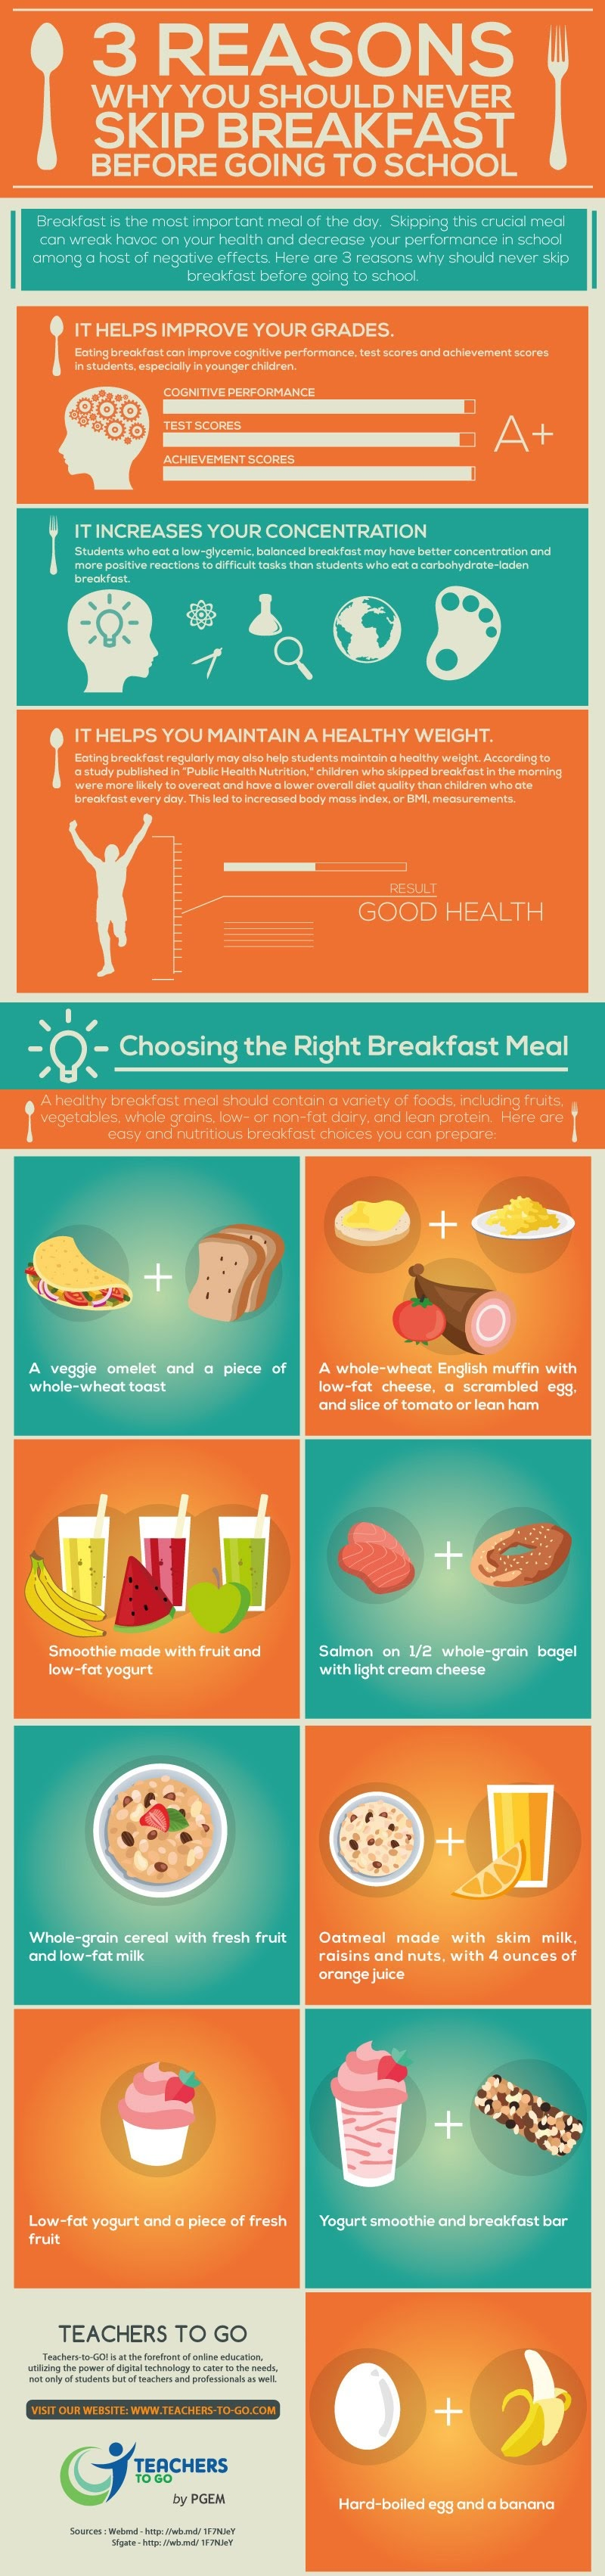 3 Reasons Why You Should Never Skip Breakfast Before Going to School